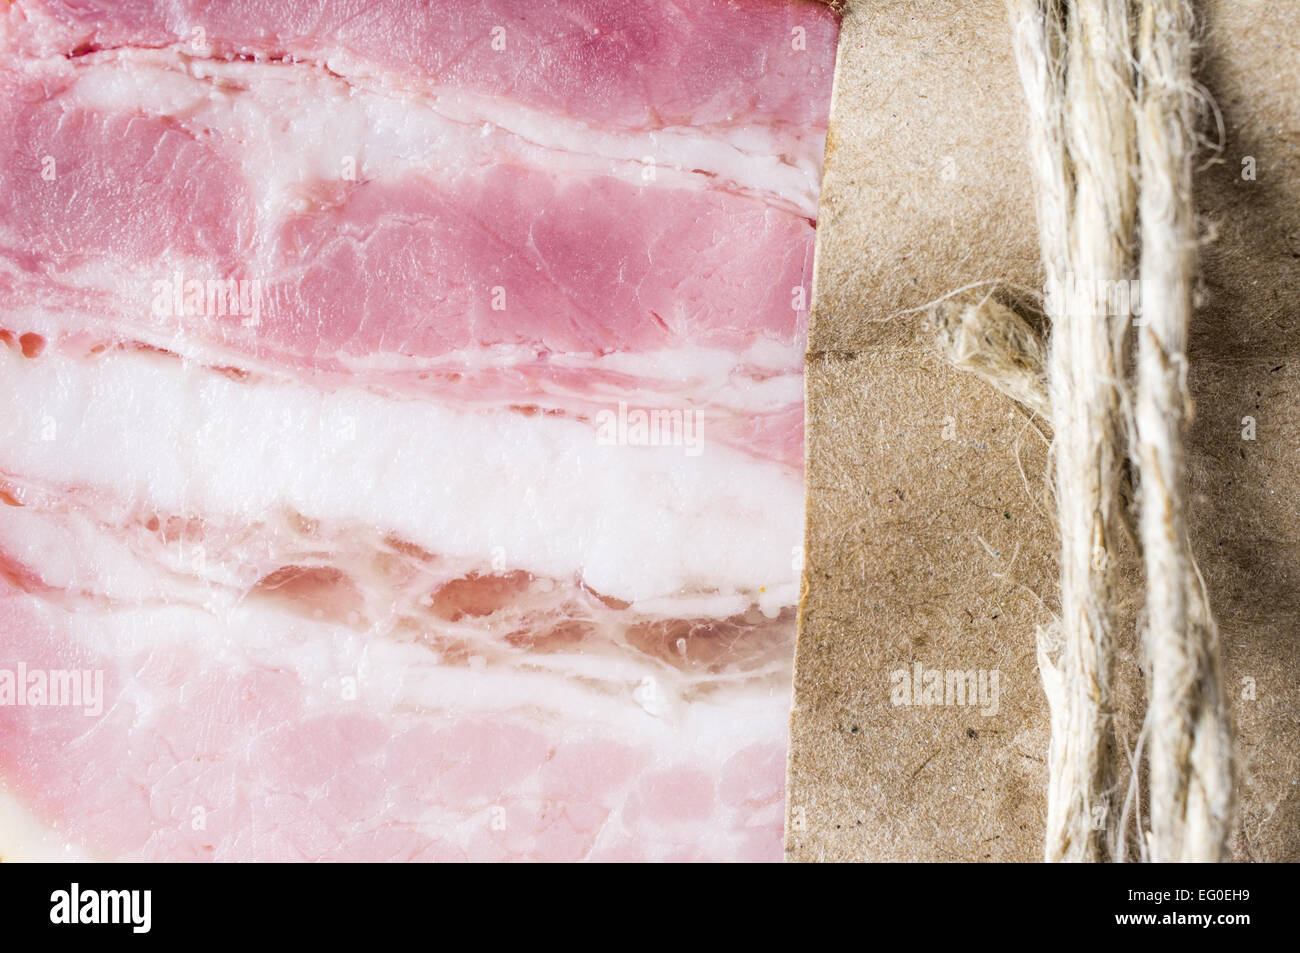 Smoked bacon in one piece of paper packaging - Stock Image